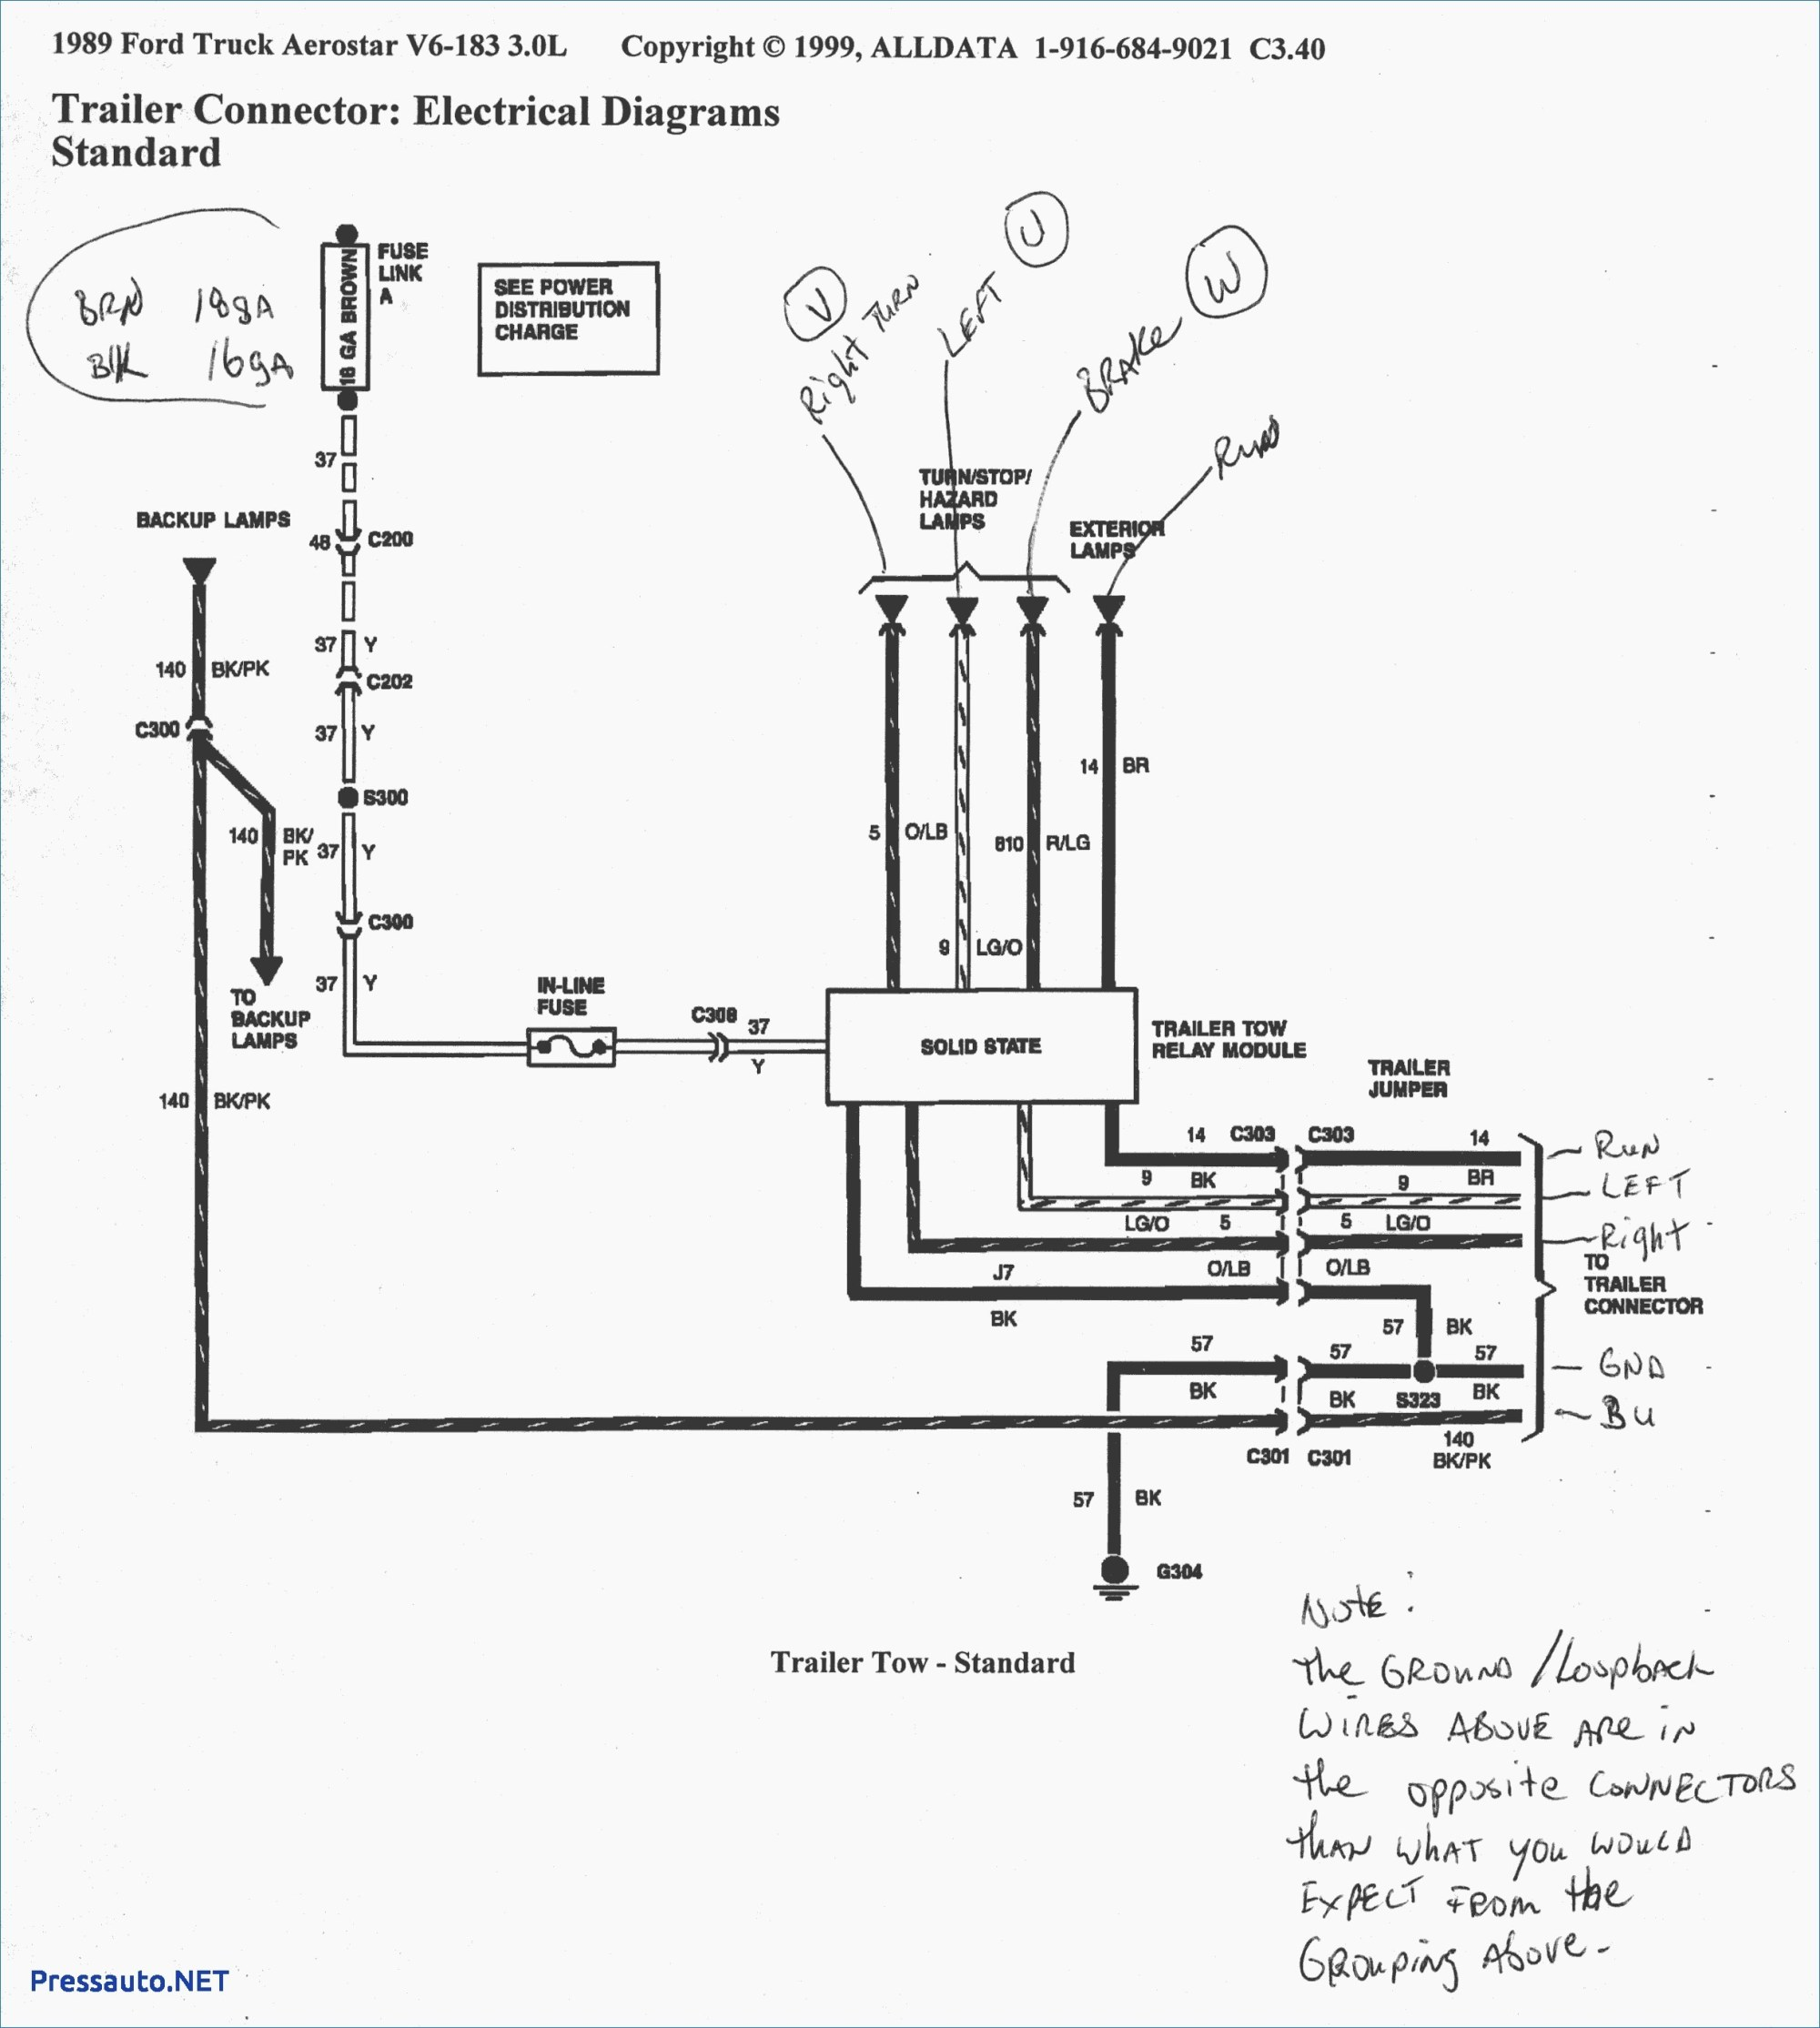 hight resolution of 1996 ford aerostar engine diagram wiring library 2001 ford explorer sport trac engine diagram 1996 ford